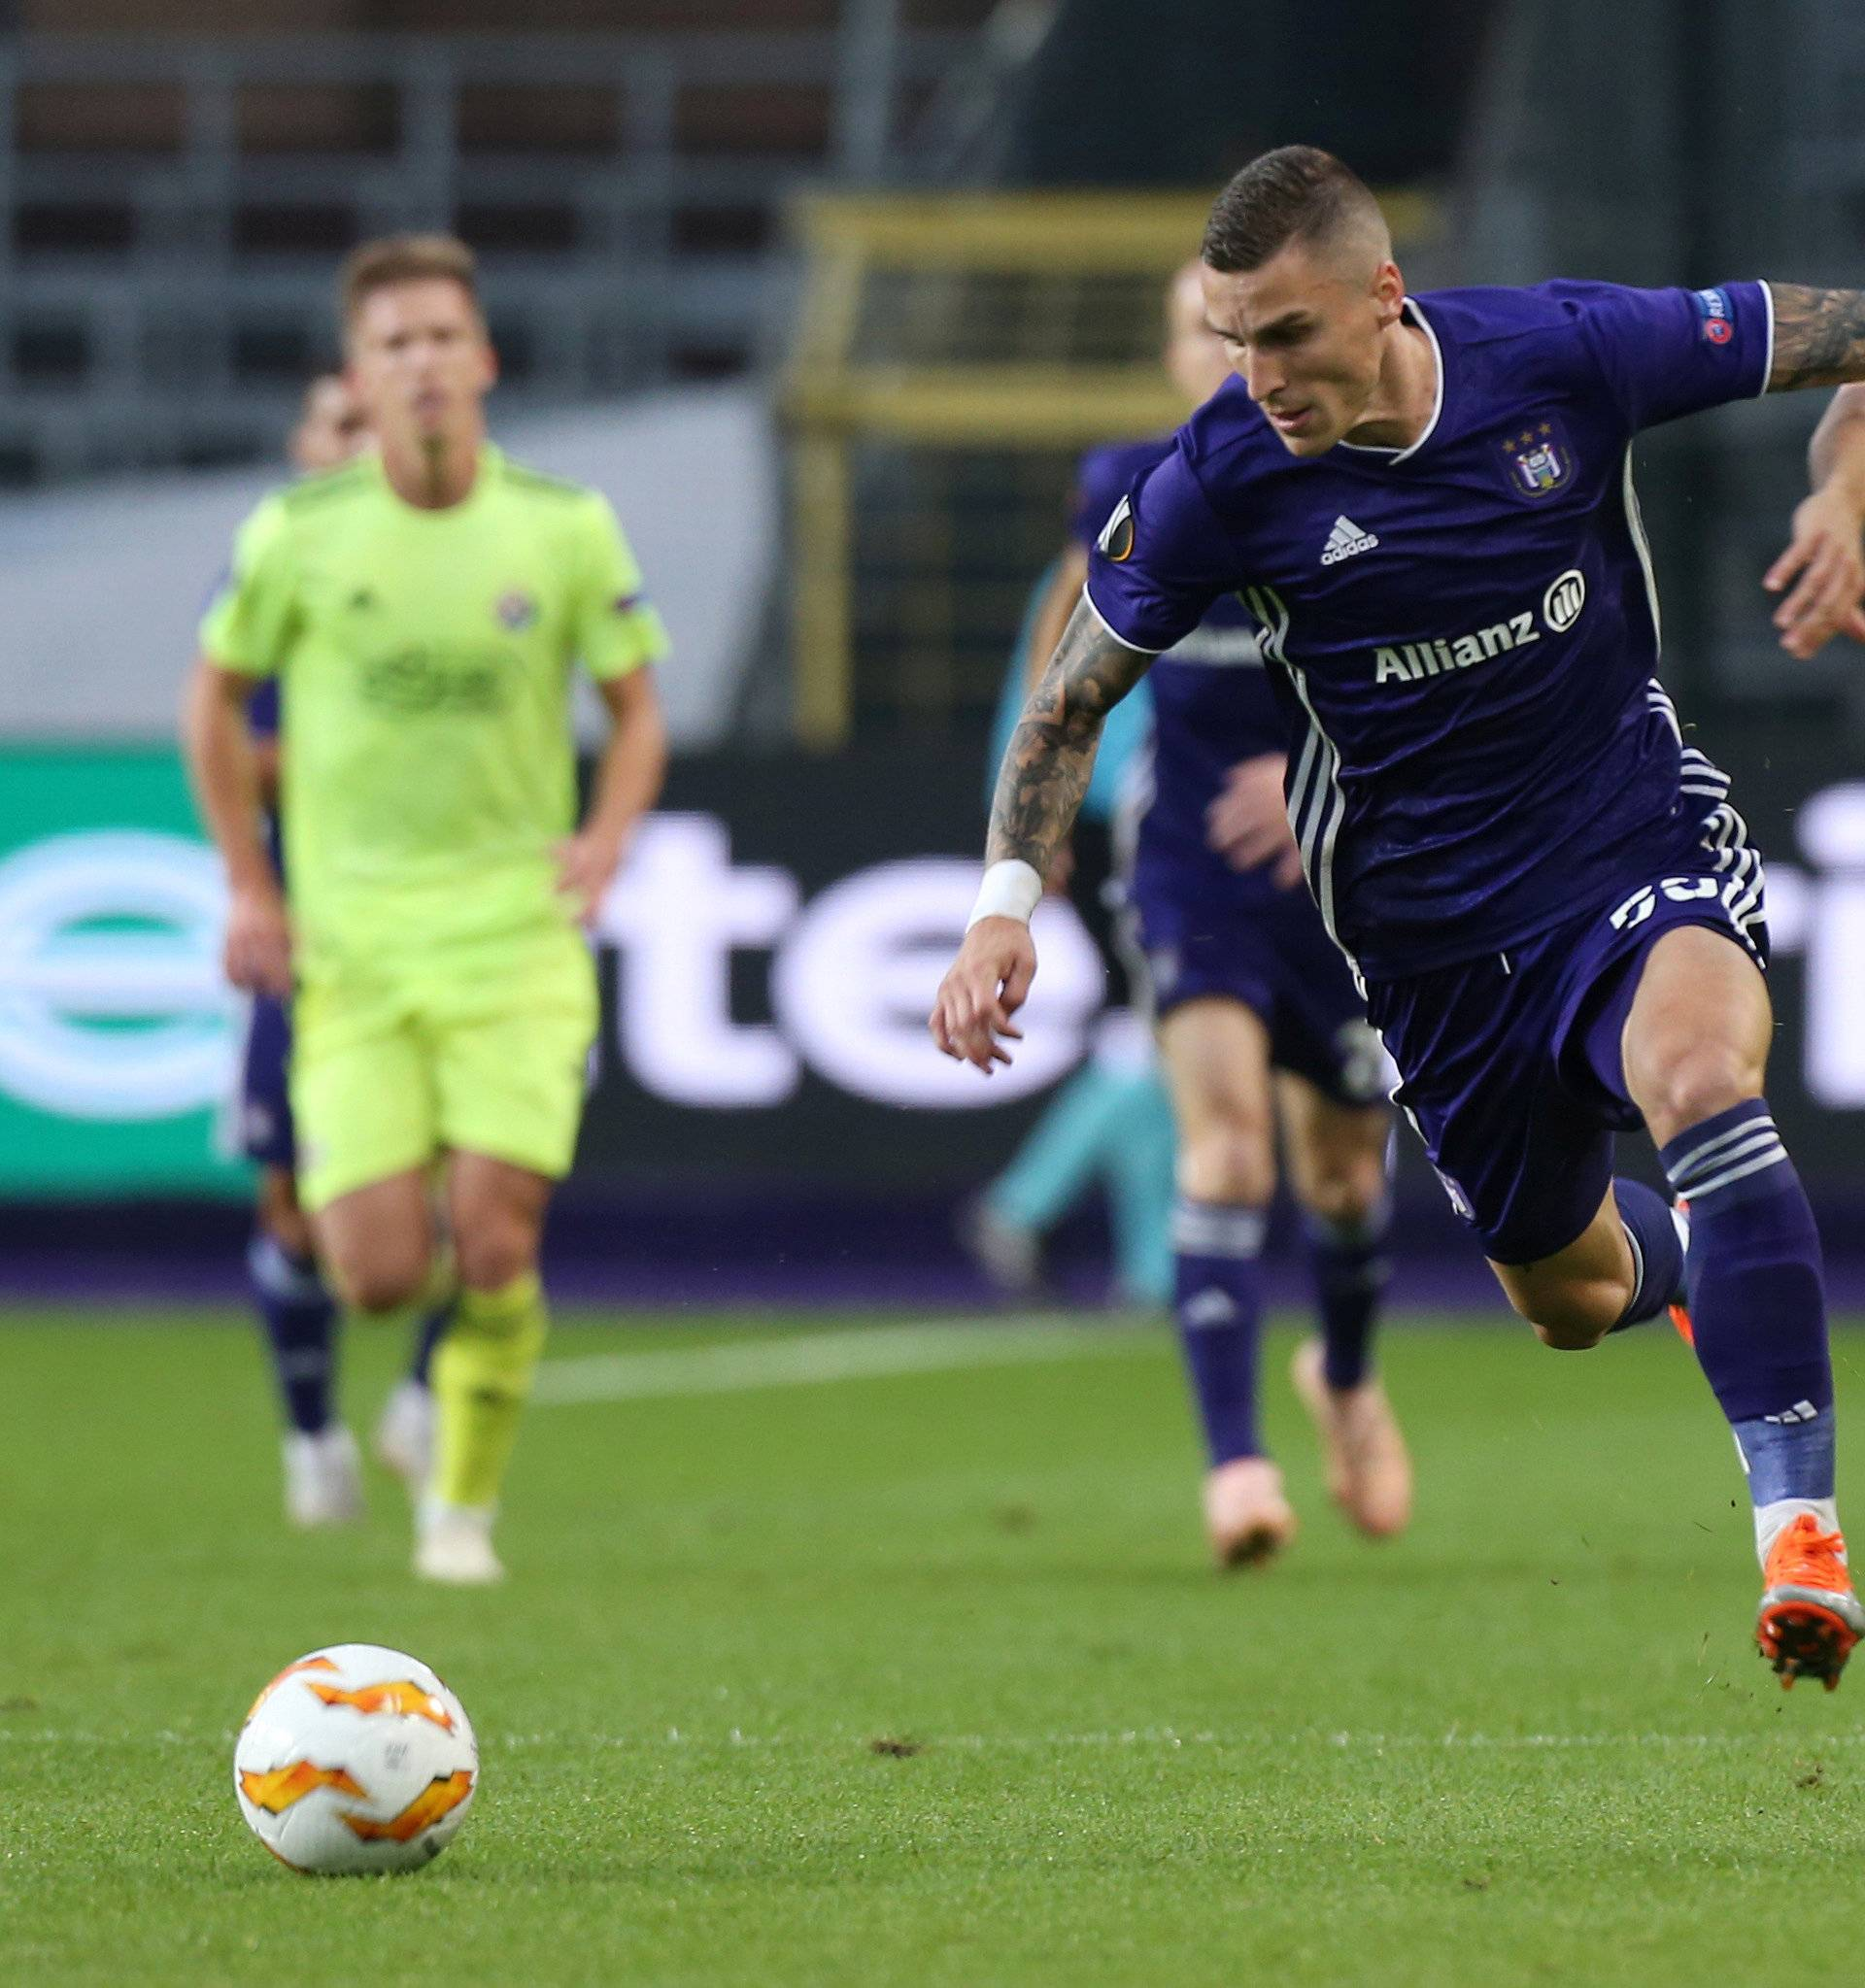 Europa League - Group Stage - Group D - Anderlecht v GNK Dinamo Zagreb